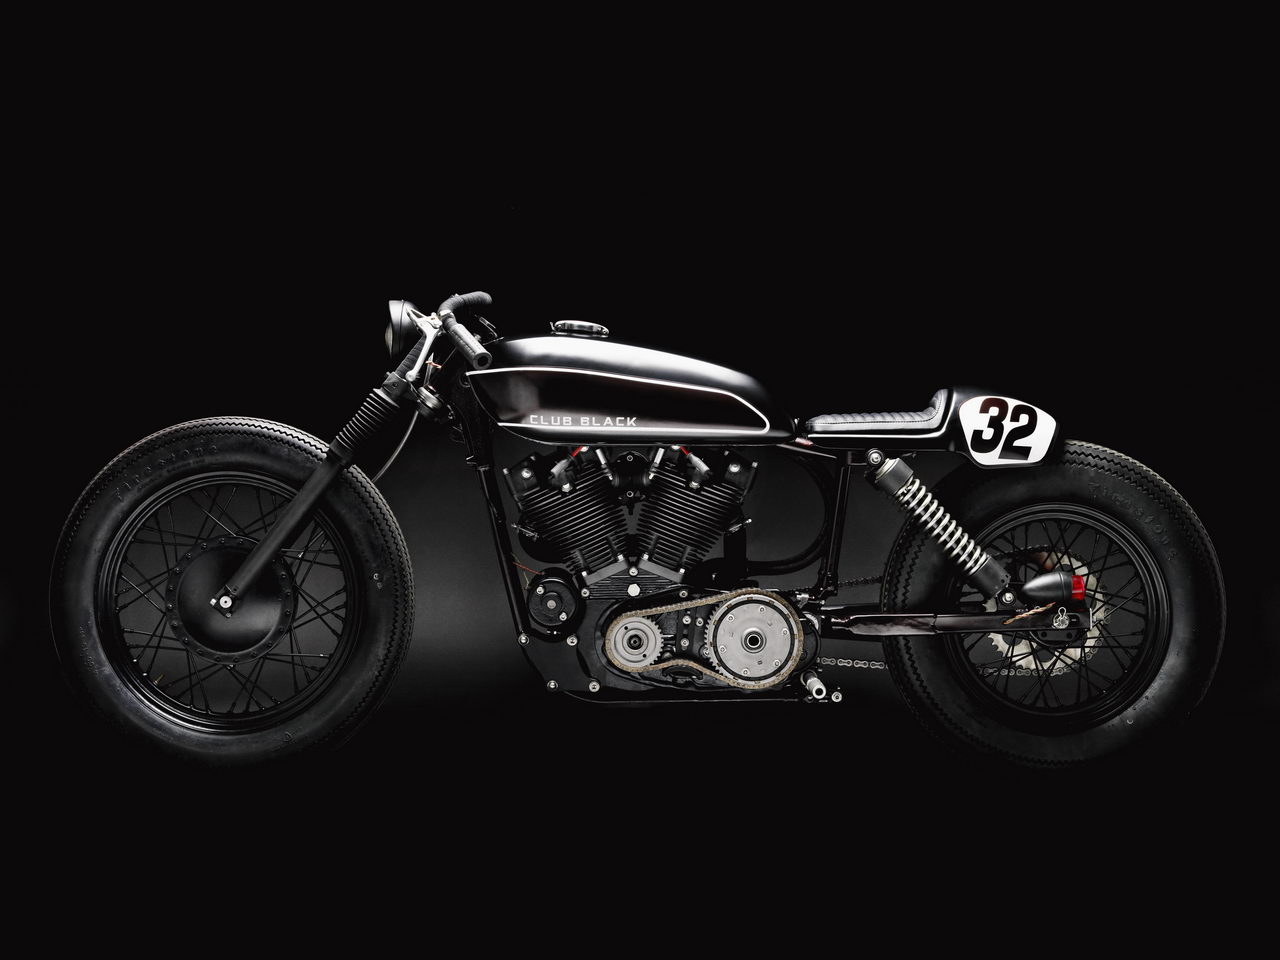 wrenchmonkees club black sportster 6 Club Black #02 by The Wrenchmonkees